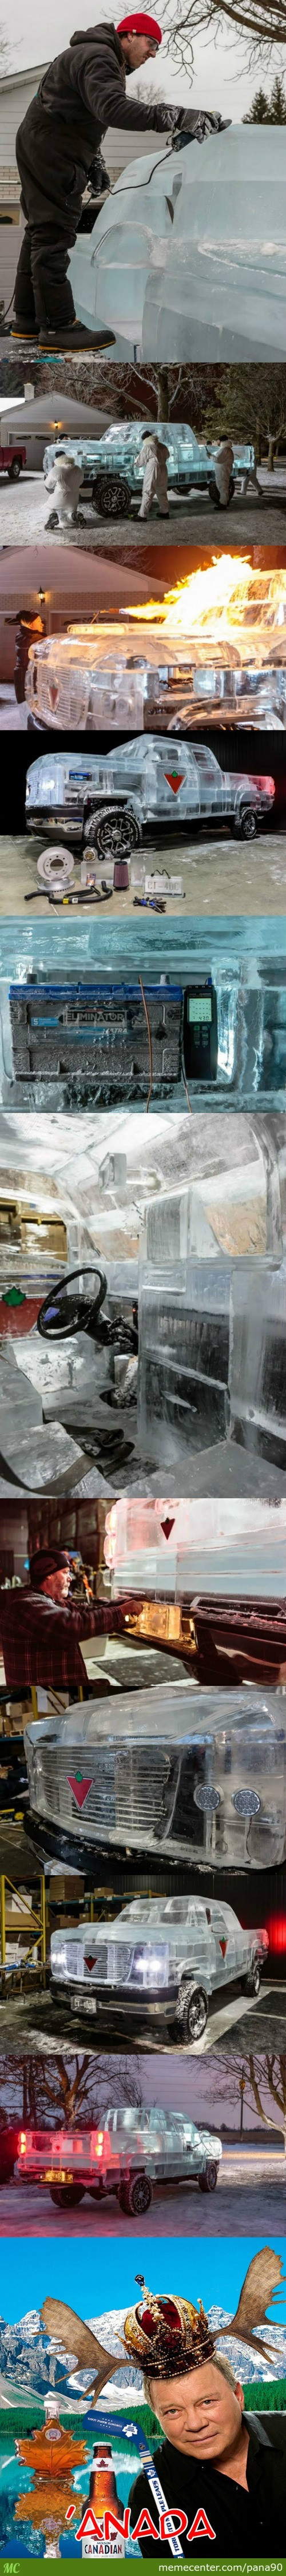 Canadians Build A Truck Out Of Ice